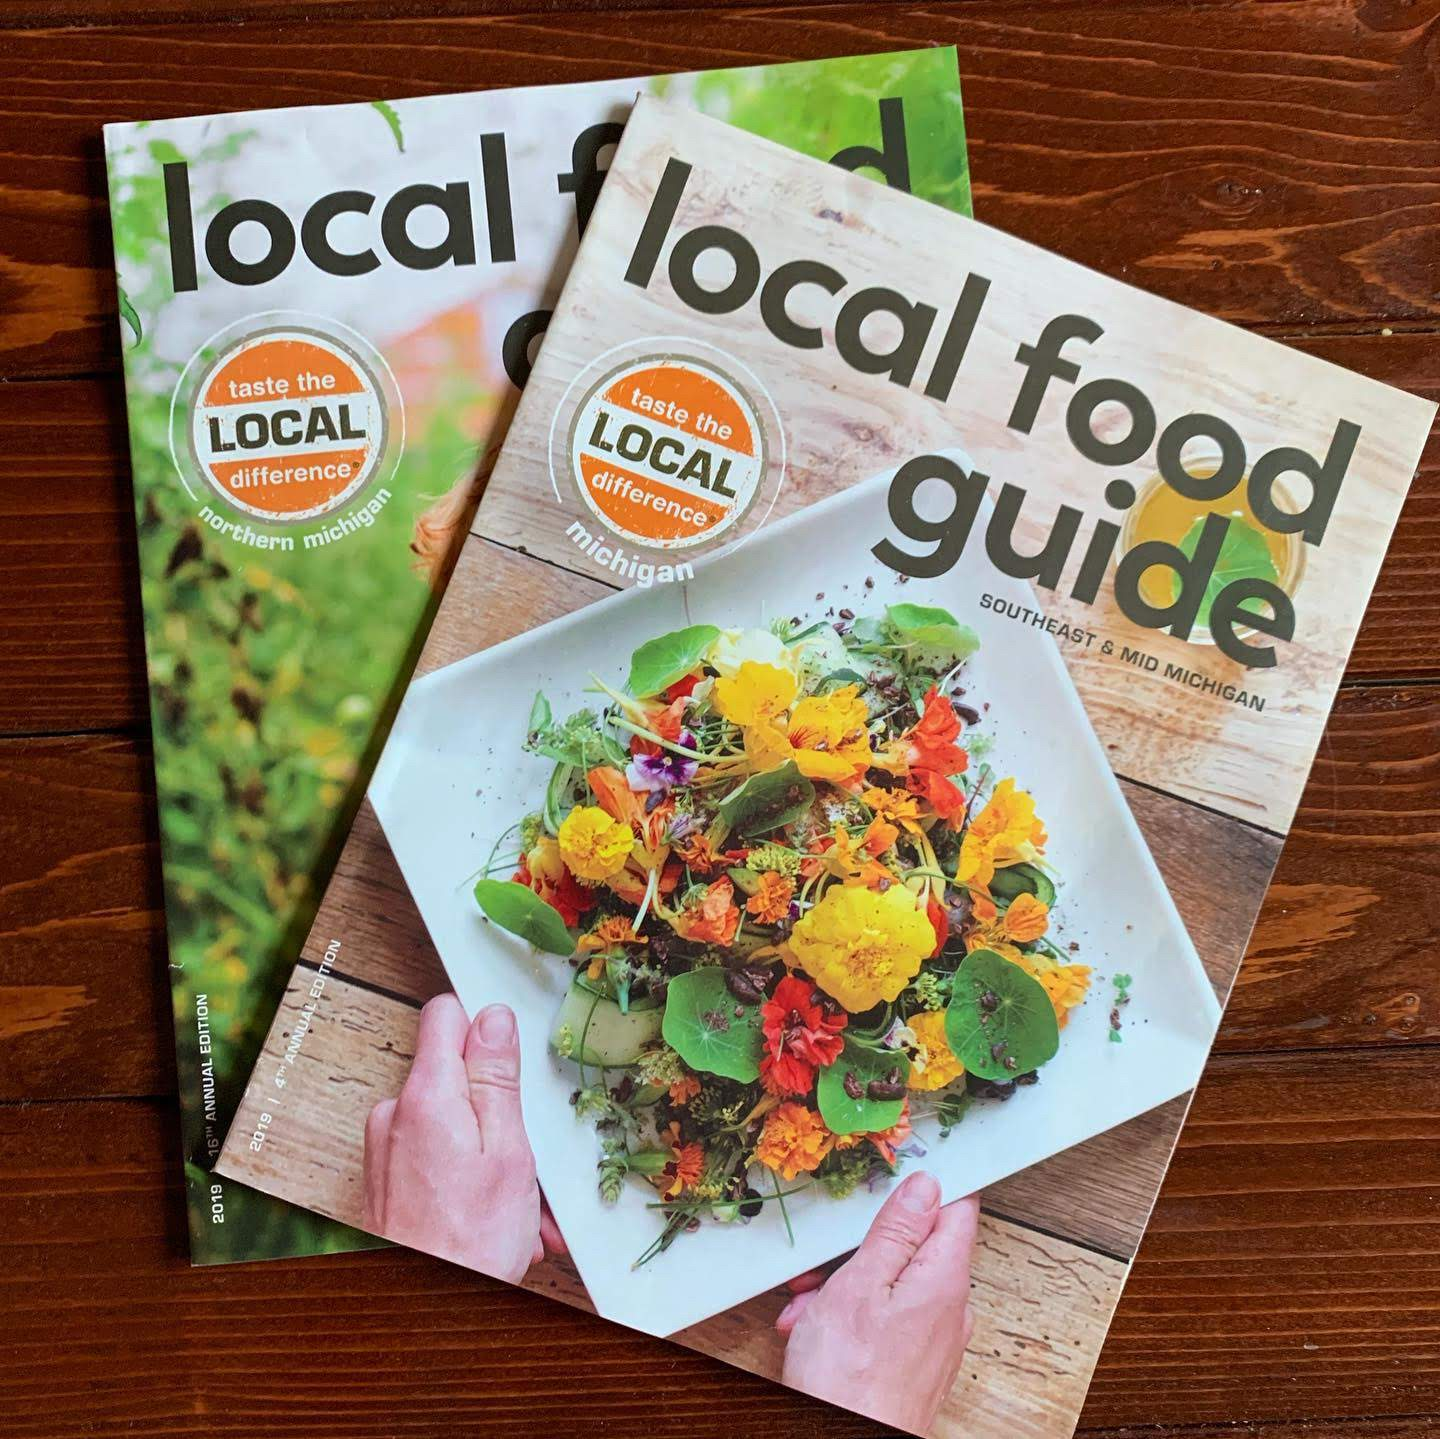 taste the local difference local food guide